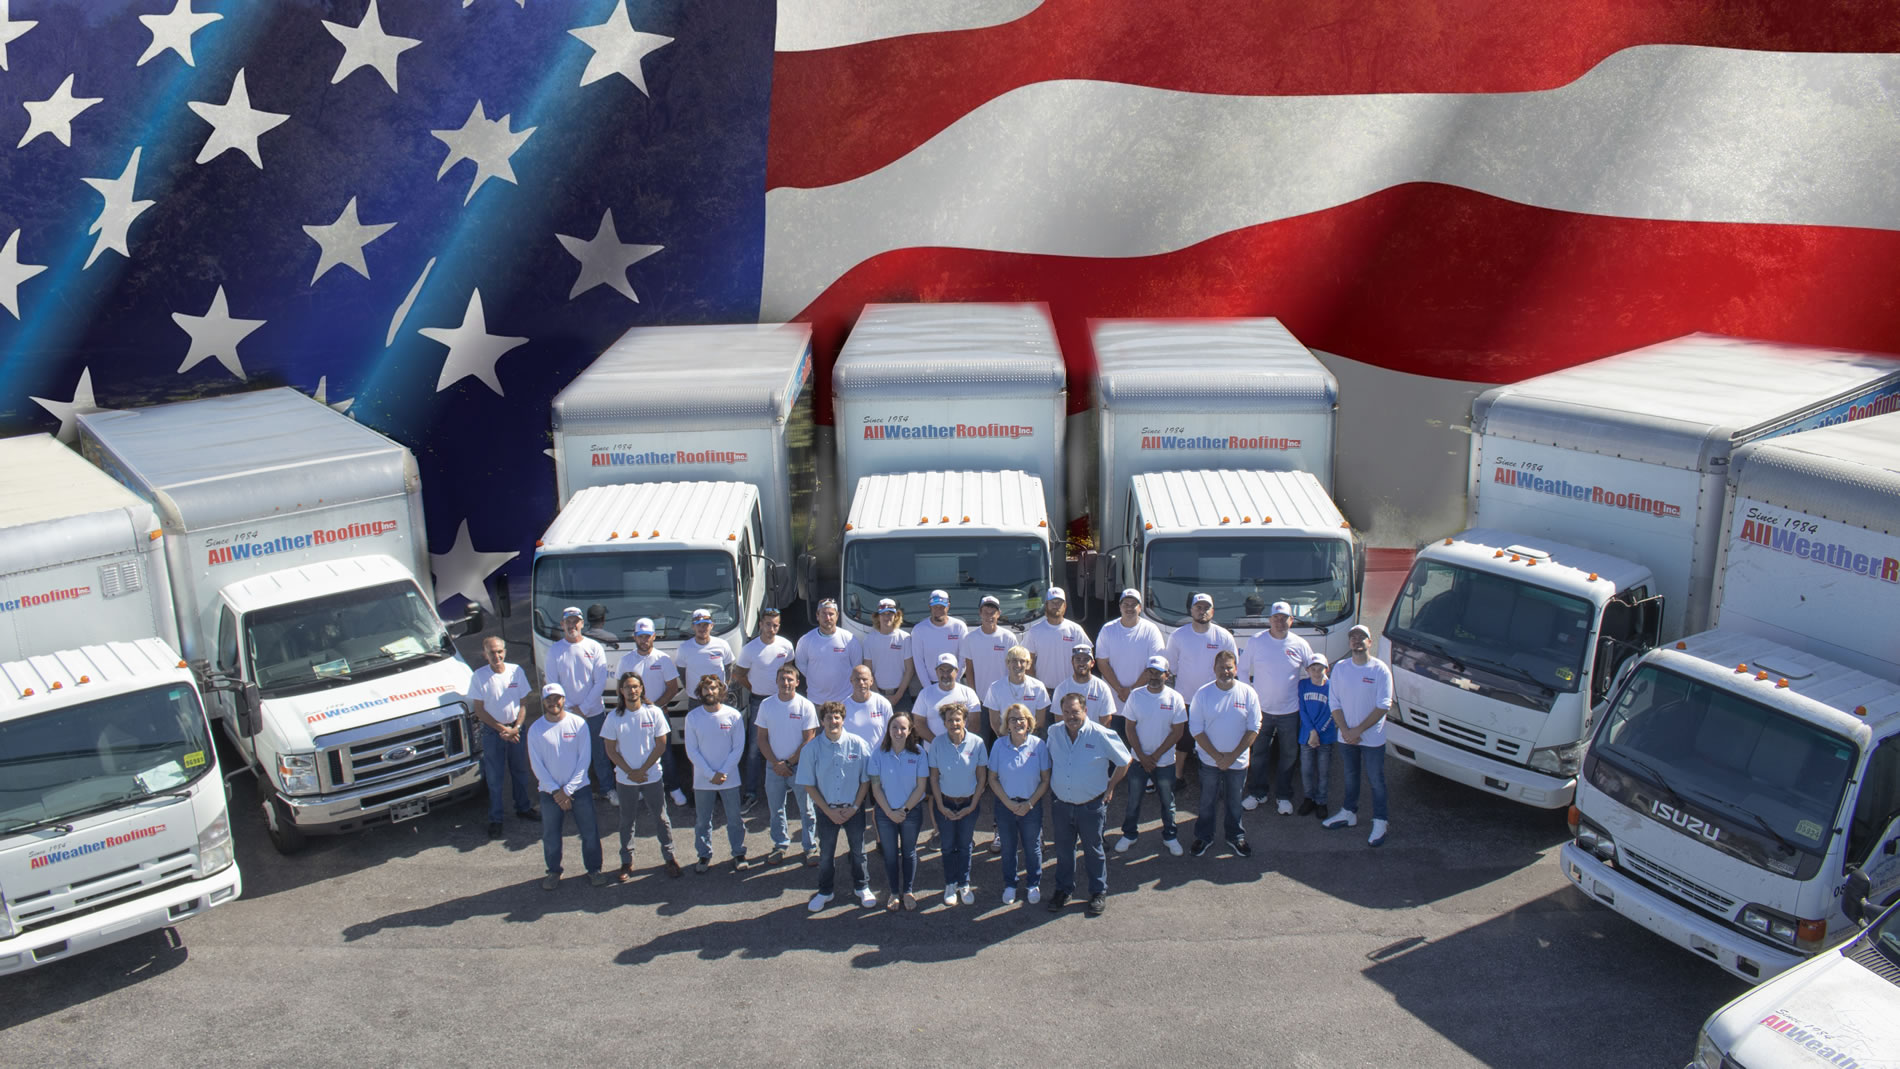 All Weather Roofing Florida Company team